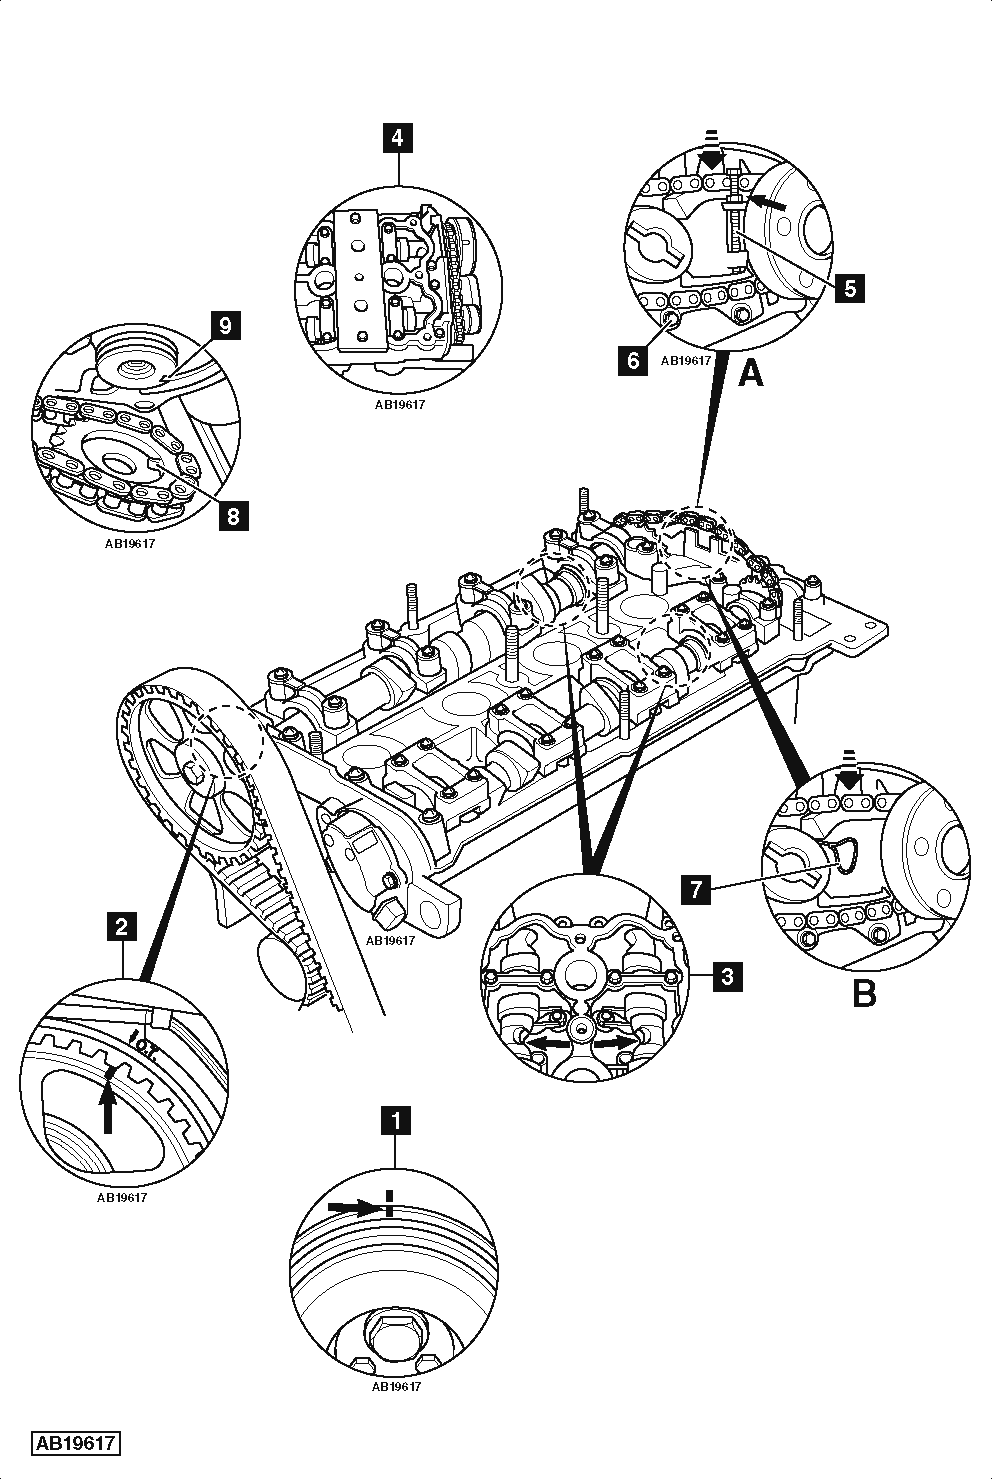 Peugeot 307 Wiring Diagram on 2011 vw cc engine diagram